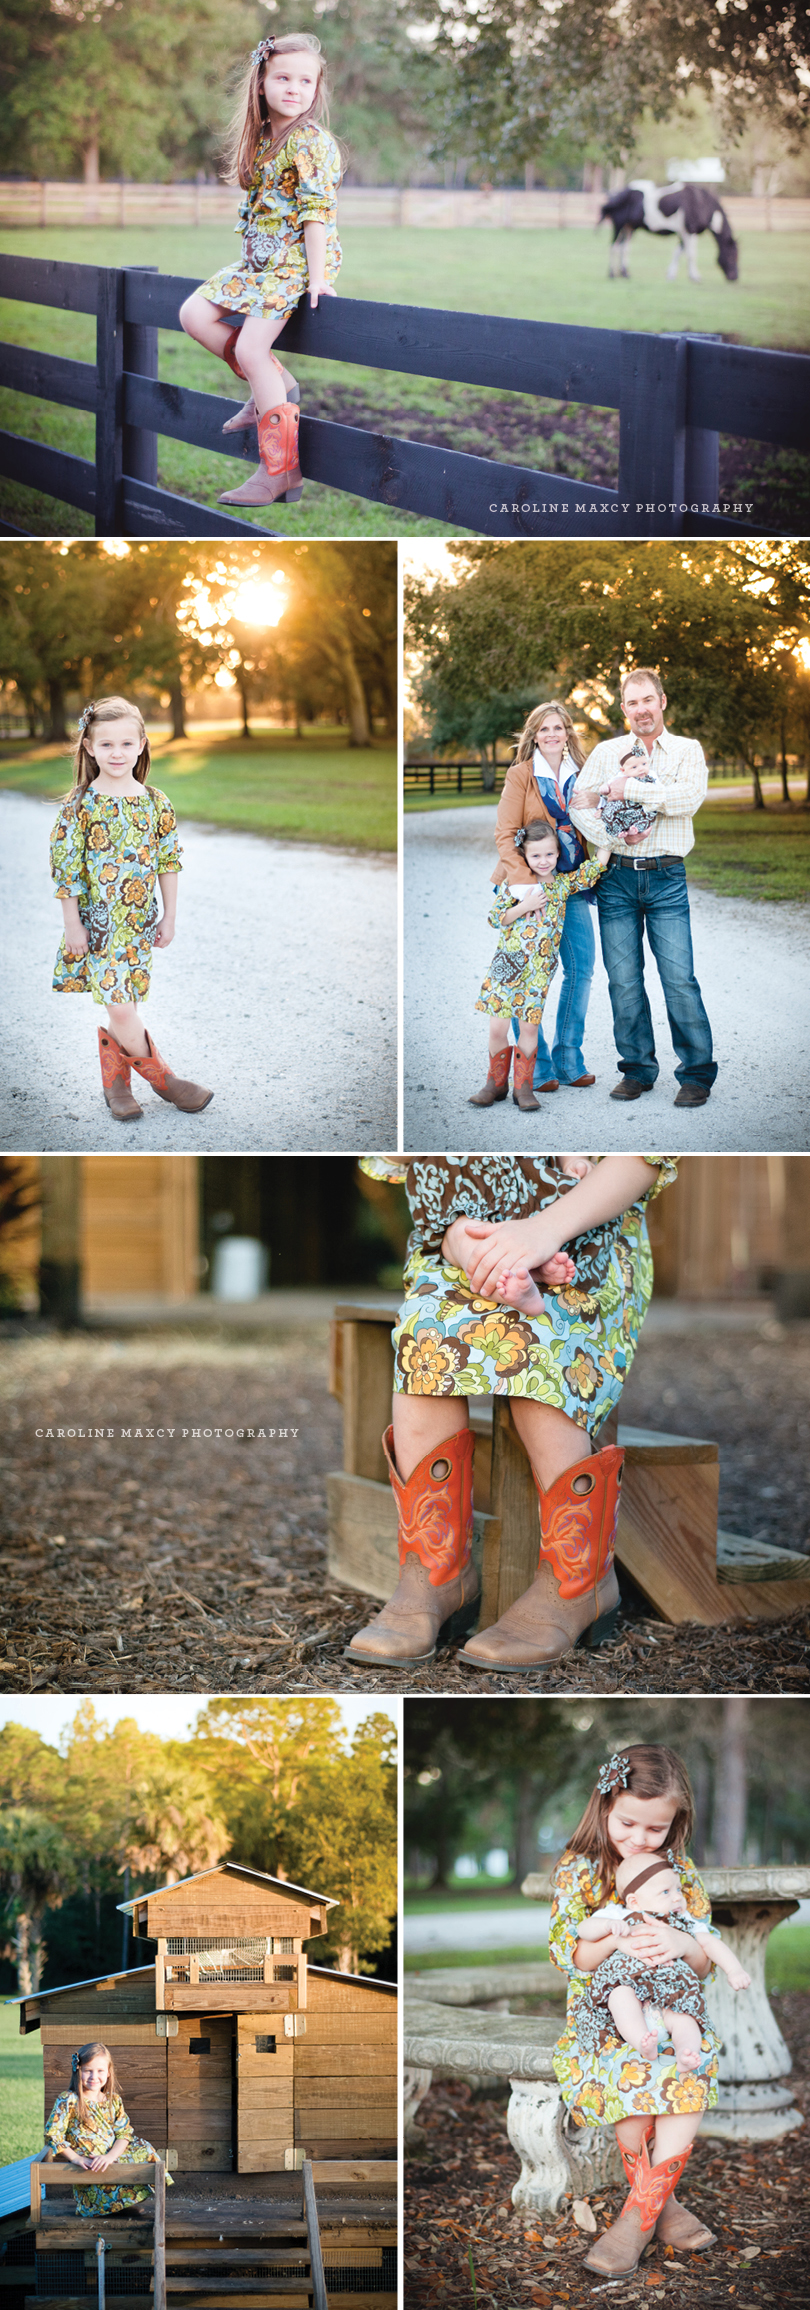 2012_CarolineMaxcyPhotography_Fall_Recap9